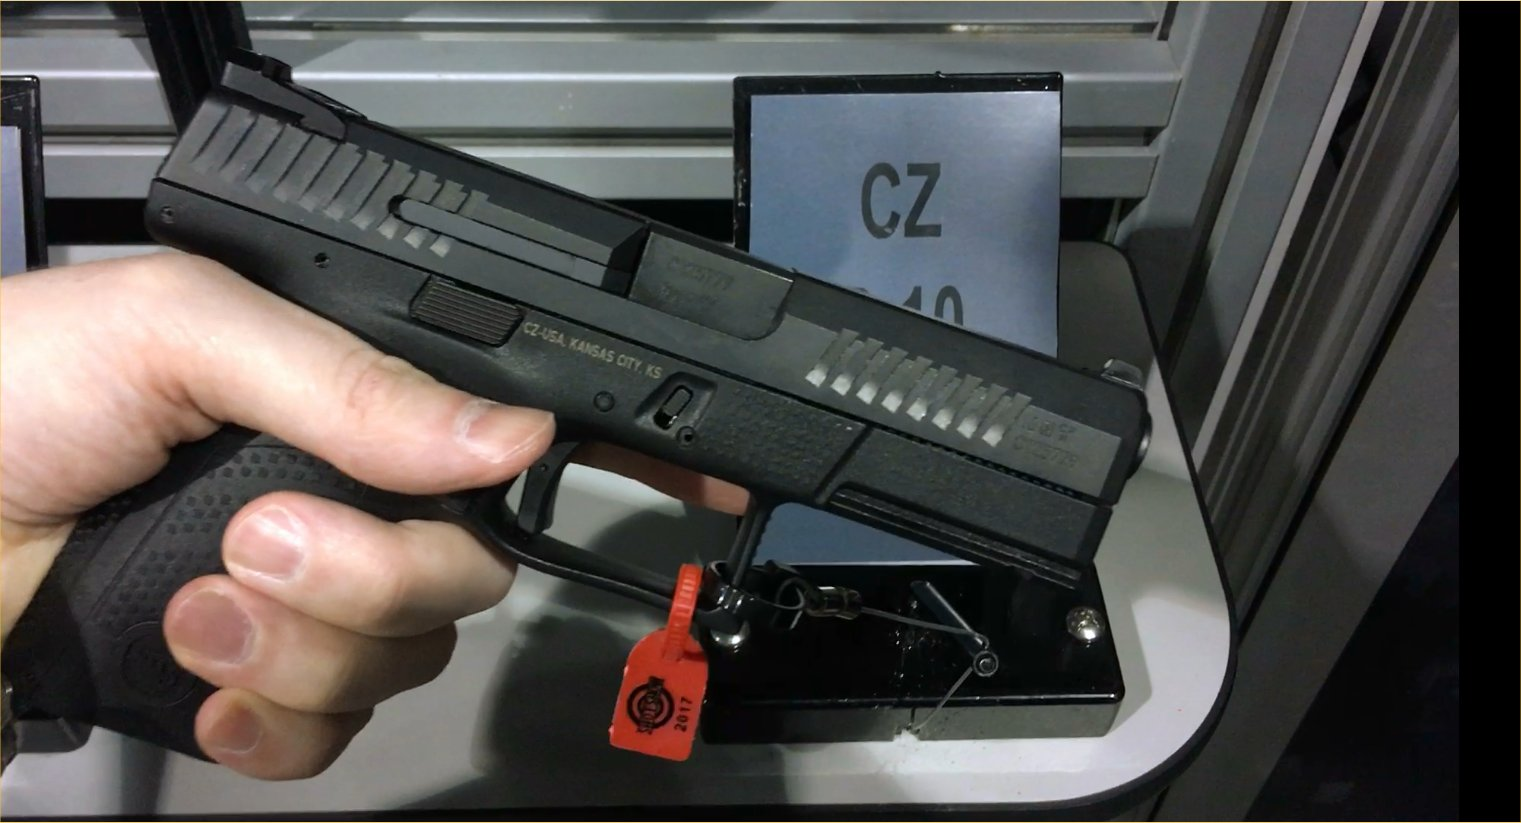 CZ P-10 C Compact Striker-Fired 9mm Combat/Tactical Pistol